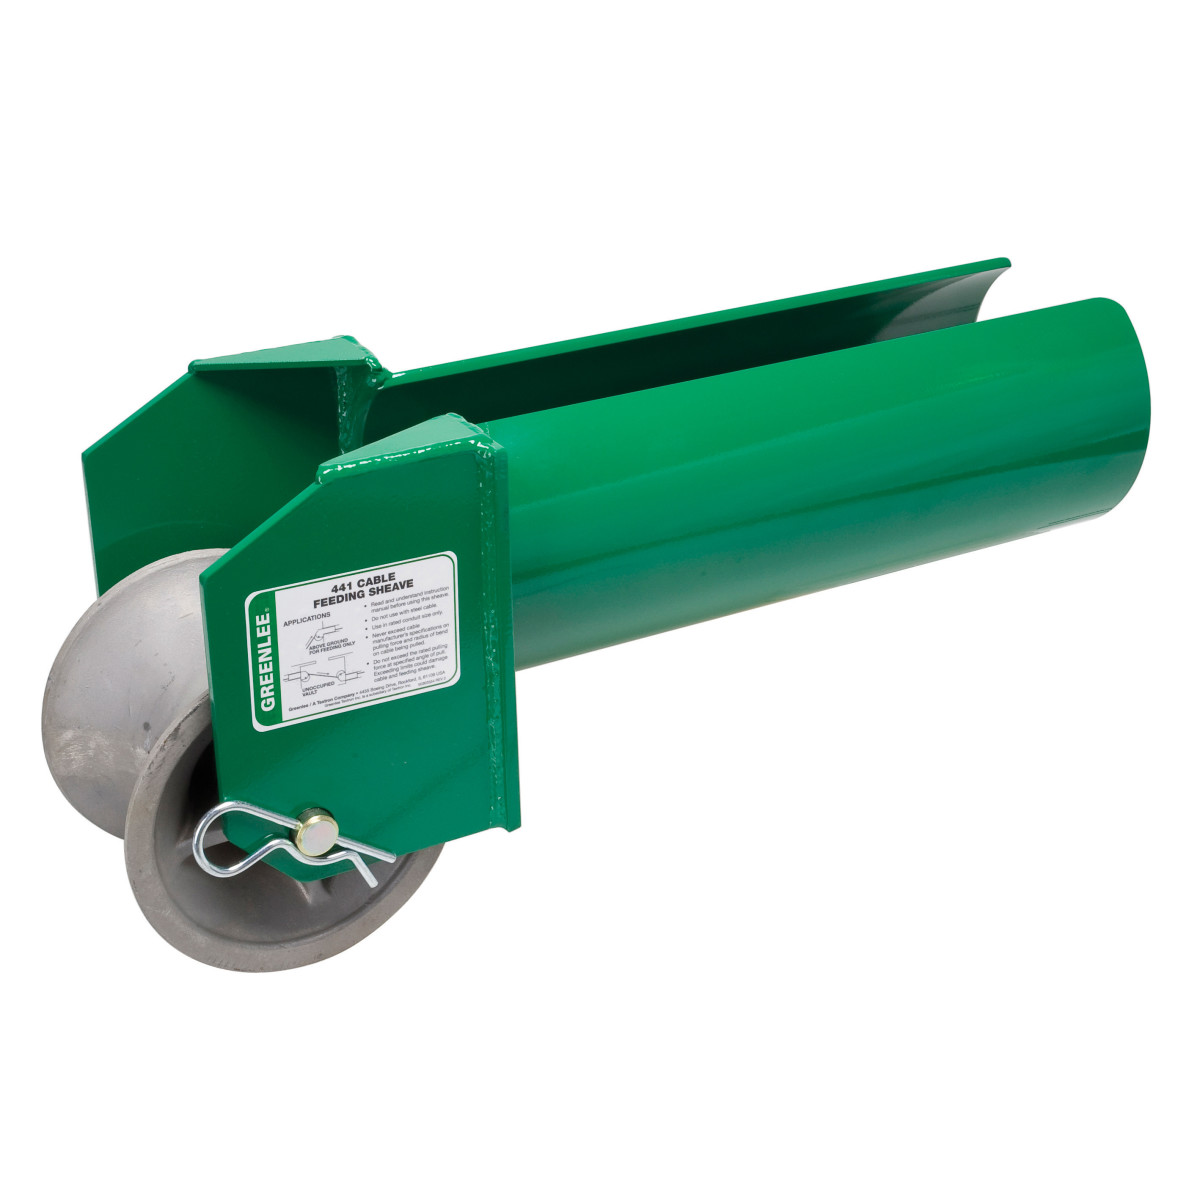 "Greenlee 441-6 Cable Feeding Sheave, 6"" Conduit"